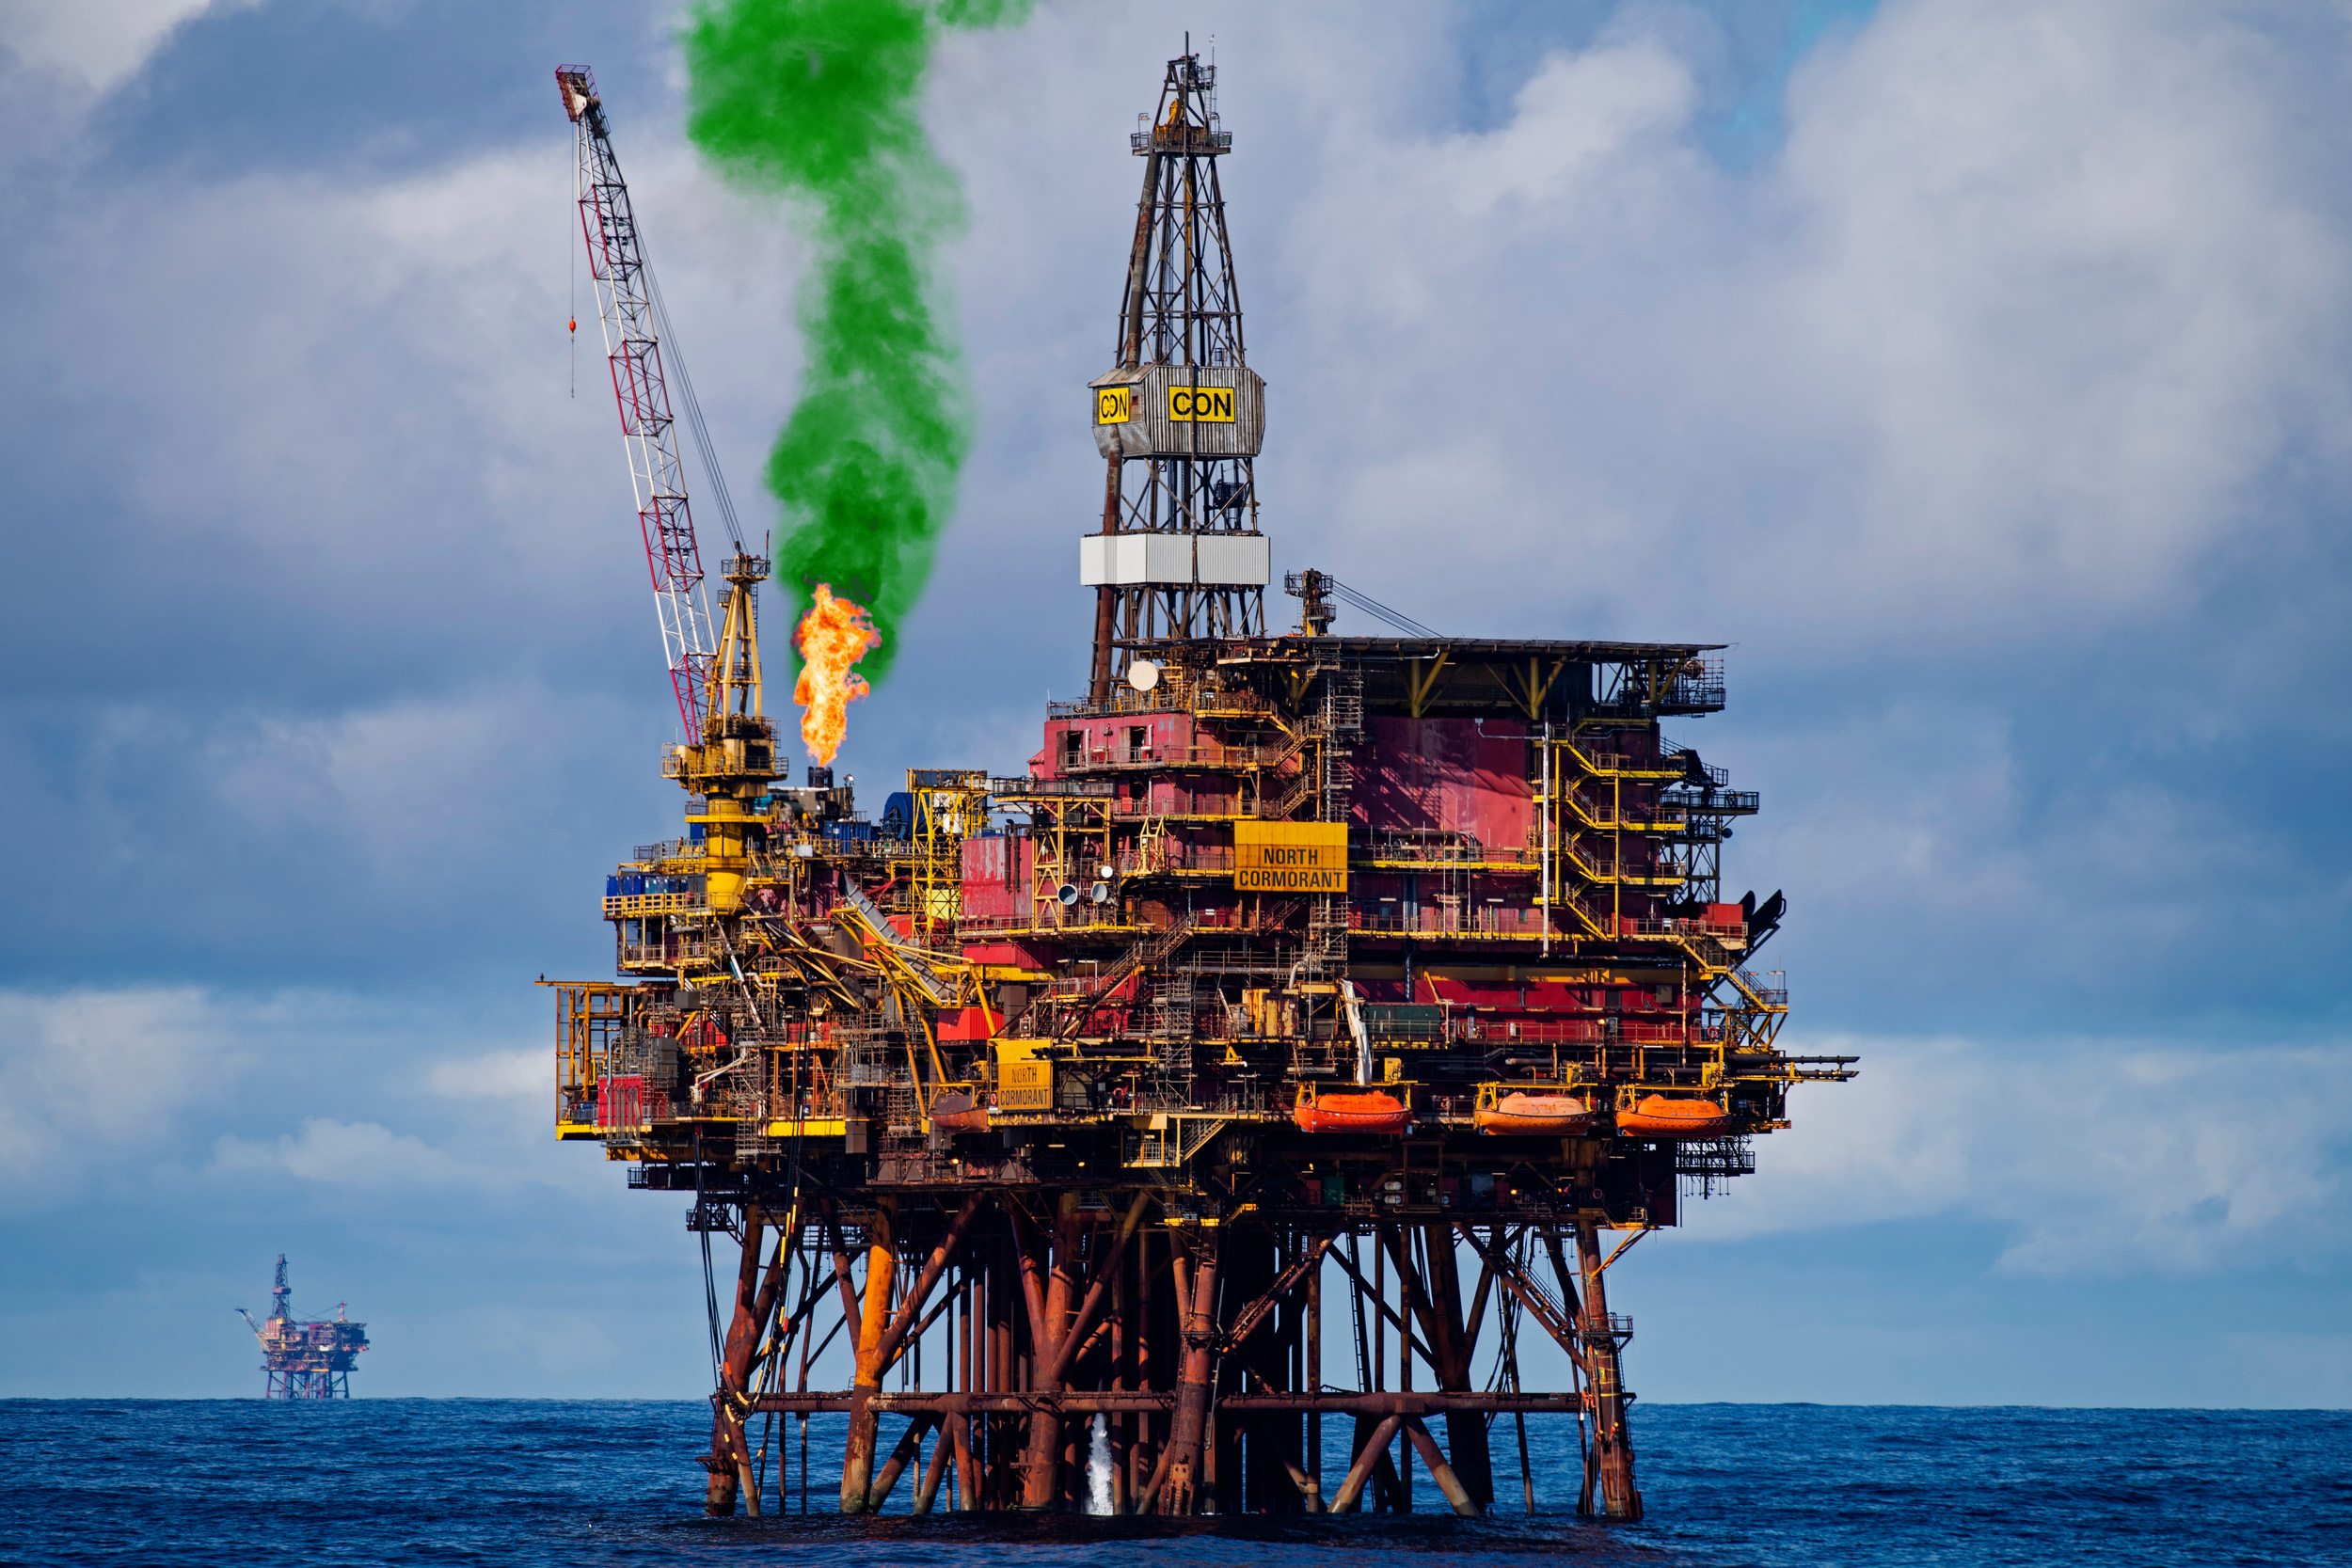 Photo illustration shows an oil rig with a plume of green smoke coming from the flaring tower.